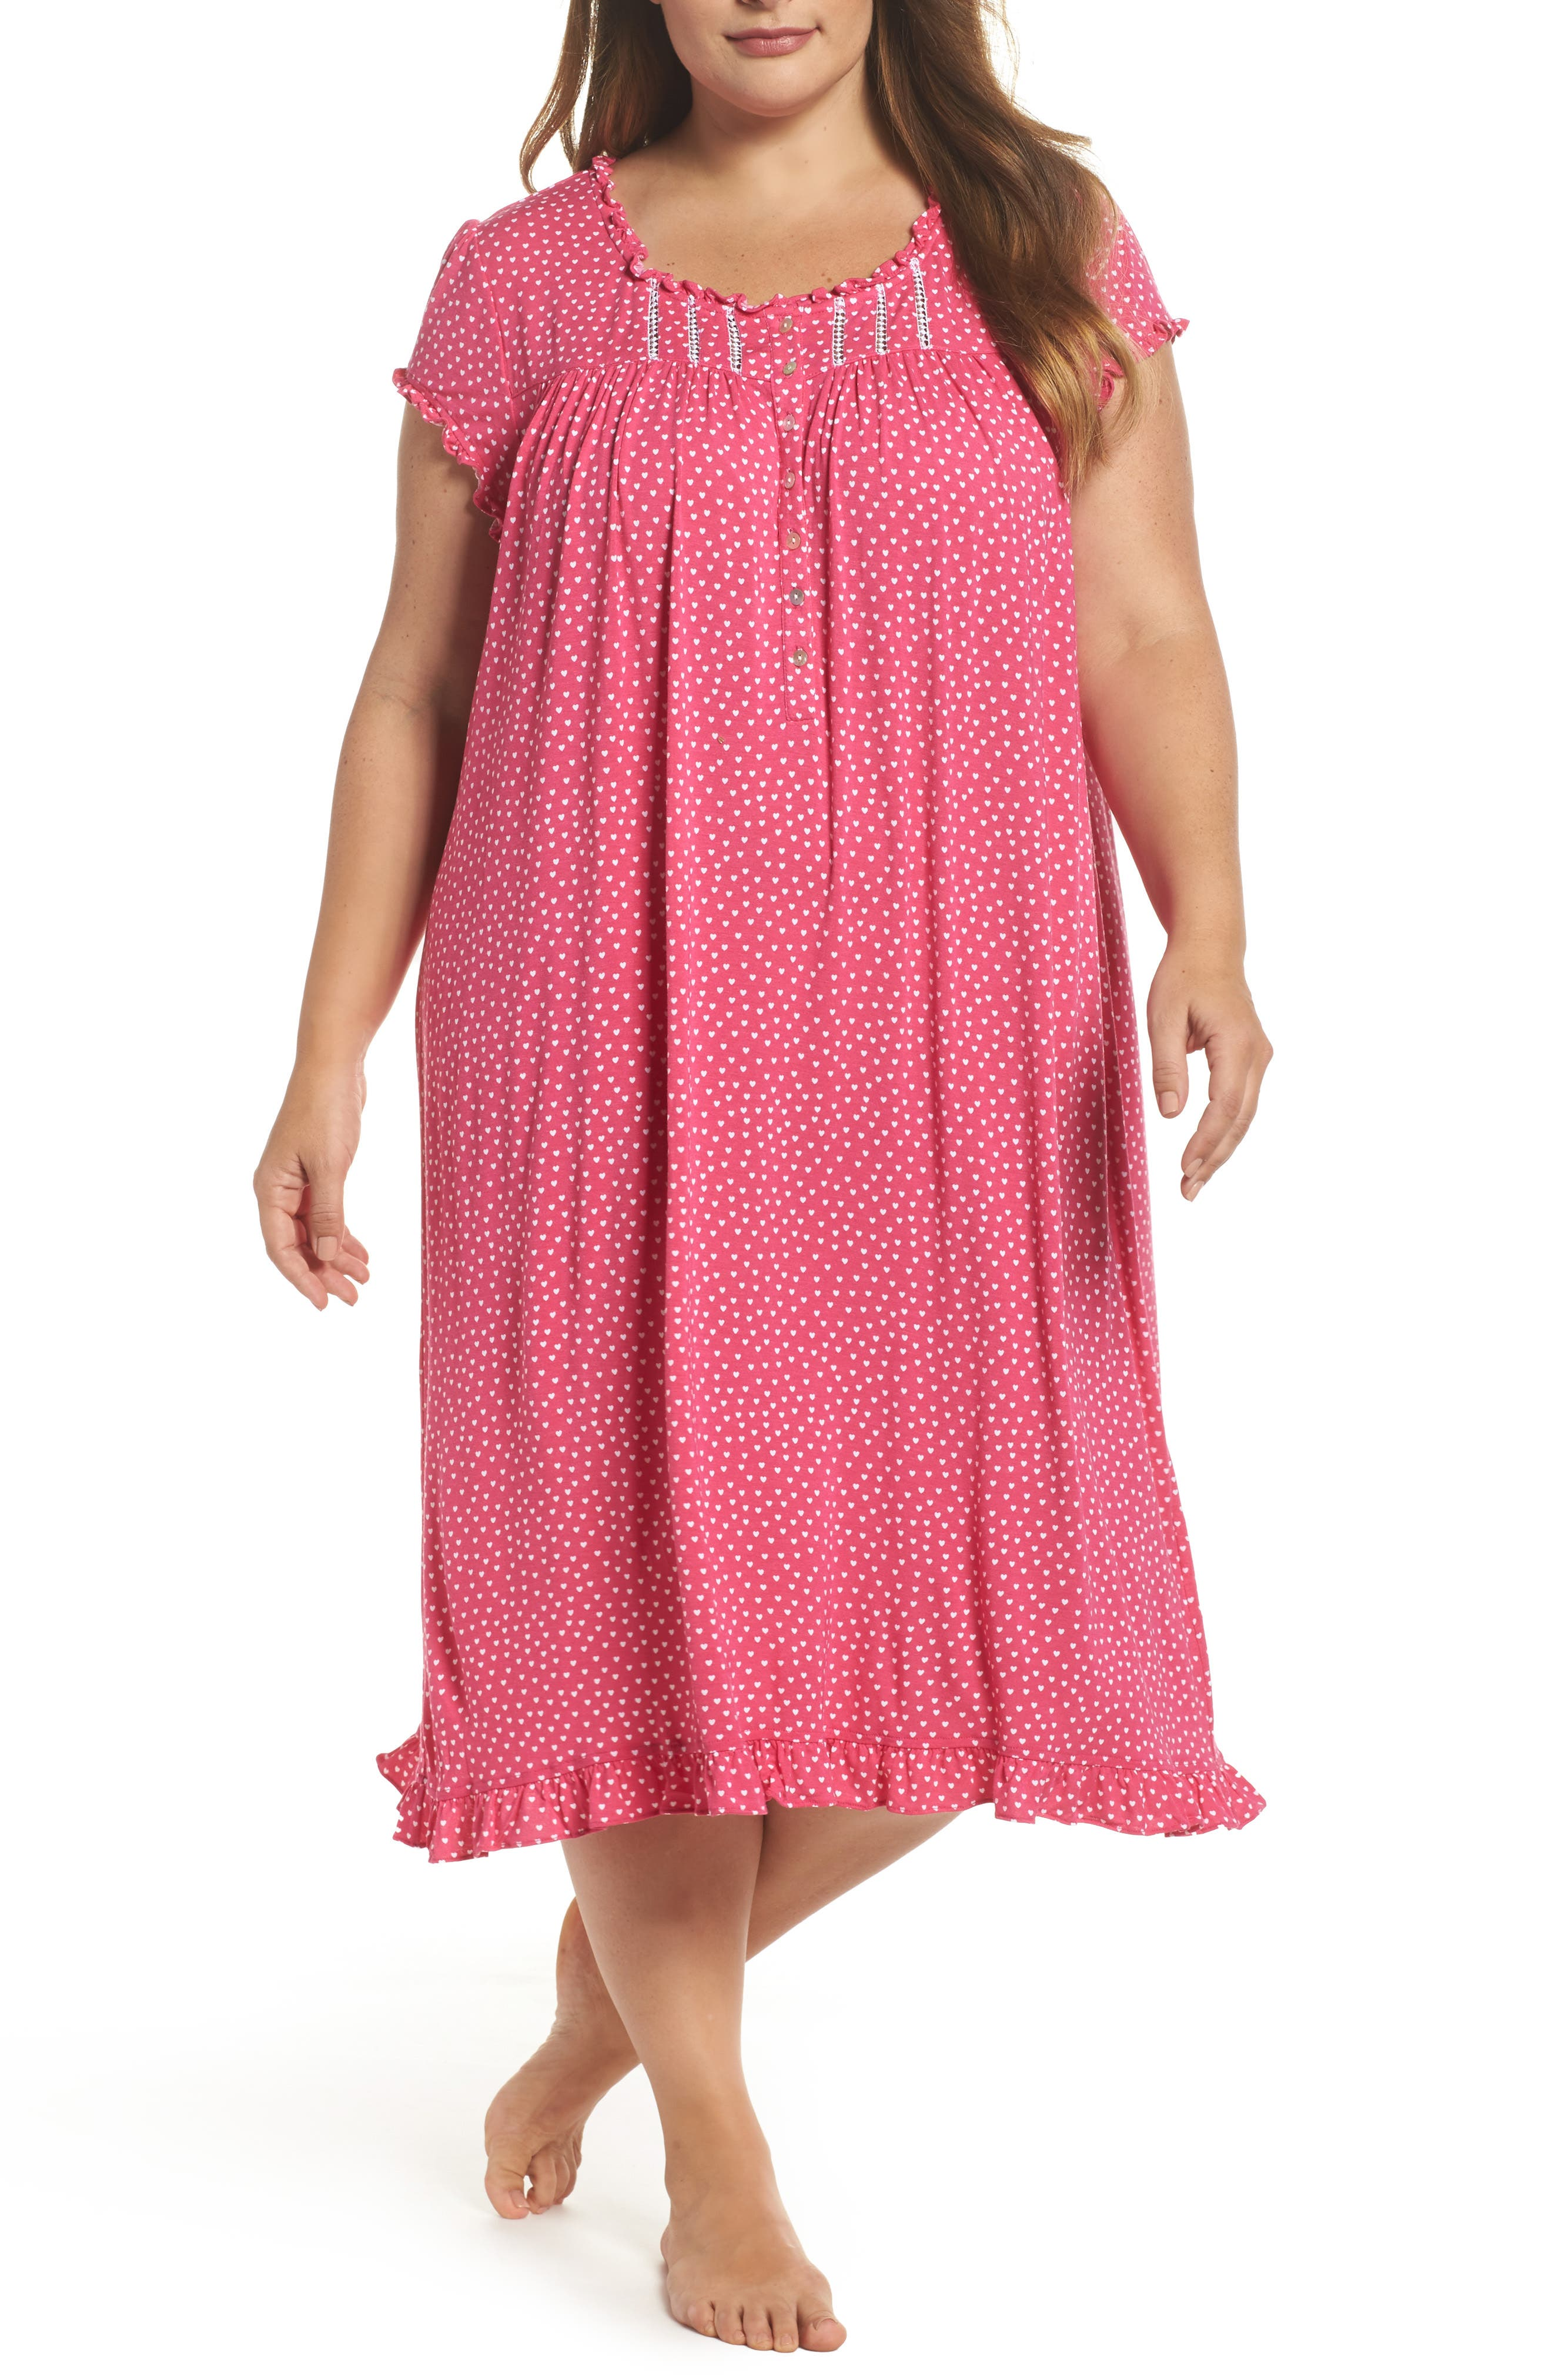 Modal Jersey Nightgown,                             Main thumbnail 1, color,                             Peony White Hearts